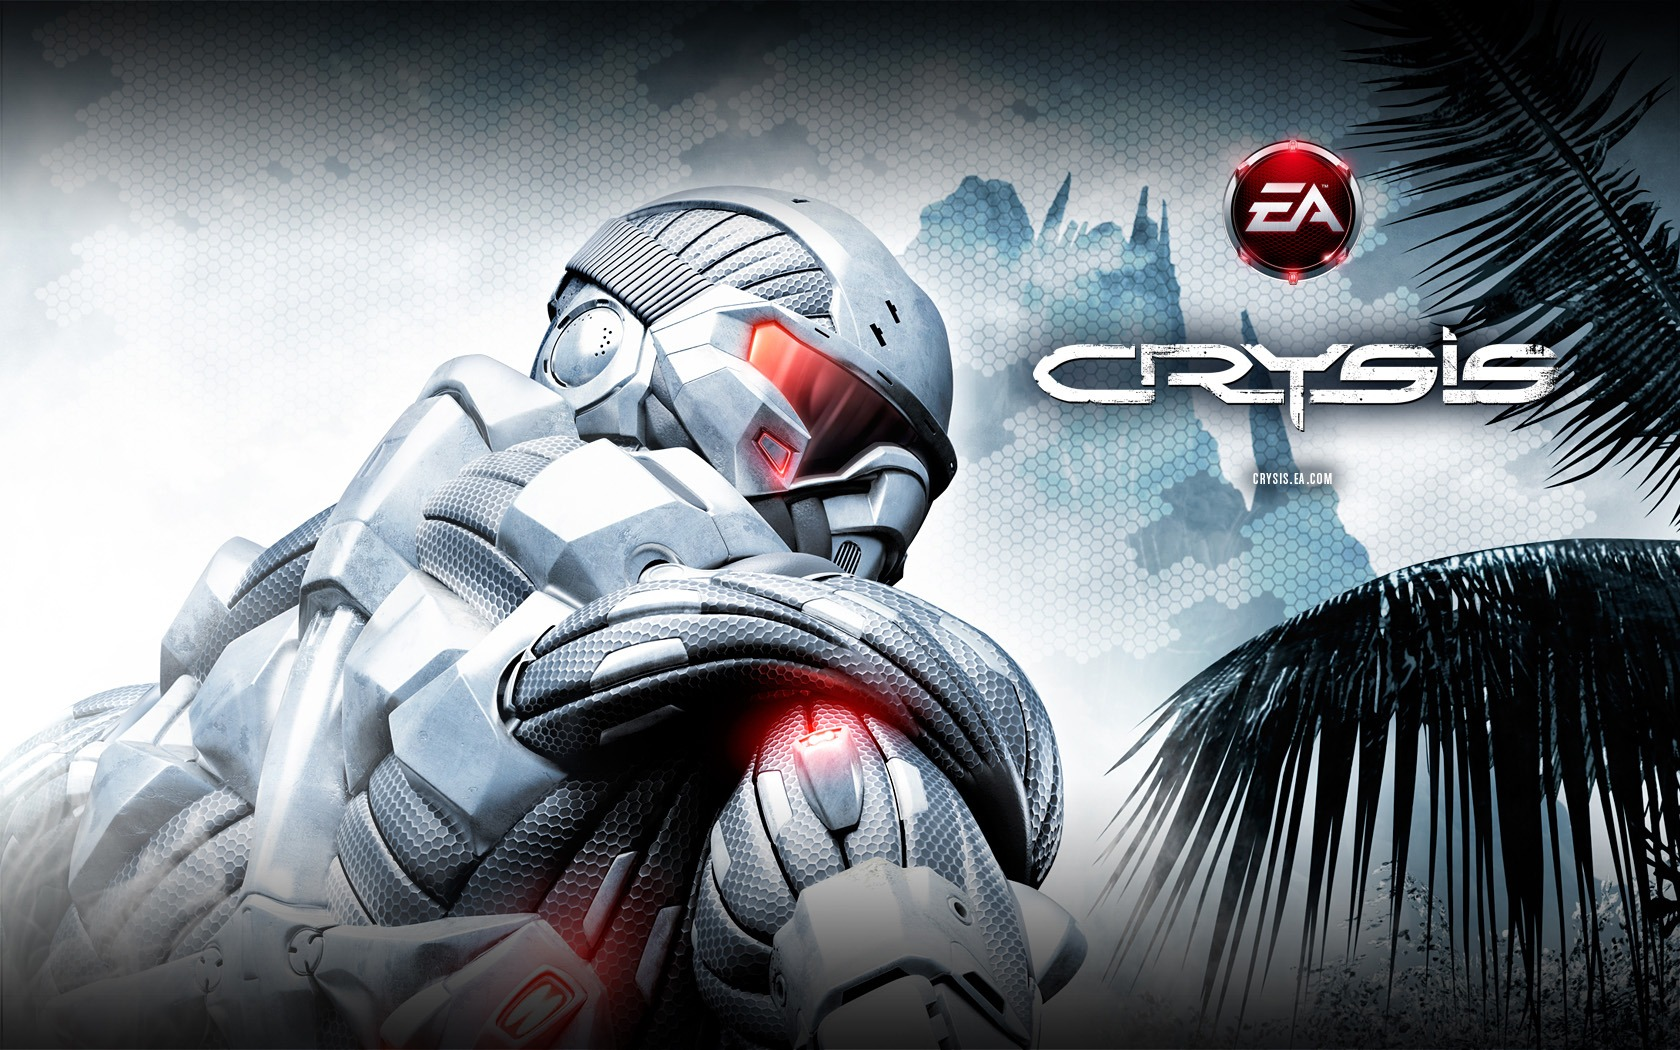 Crysis game wallpaper crysis games wallpapers in jpg format for free crysis game wallpaper crysis games wallpapers voltagebd Gallery